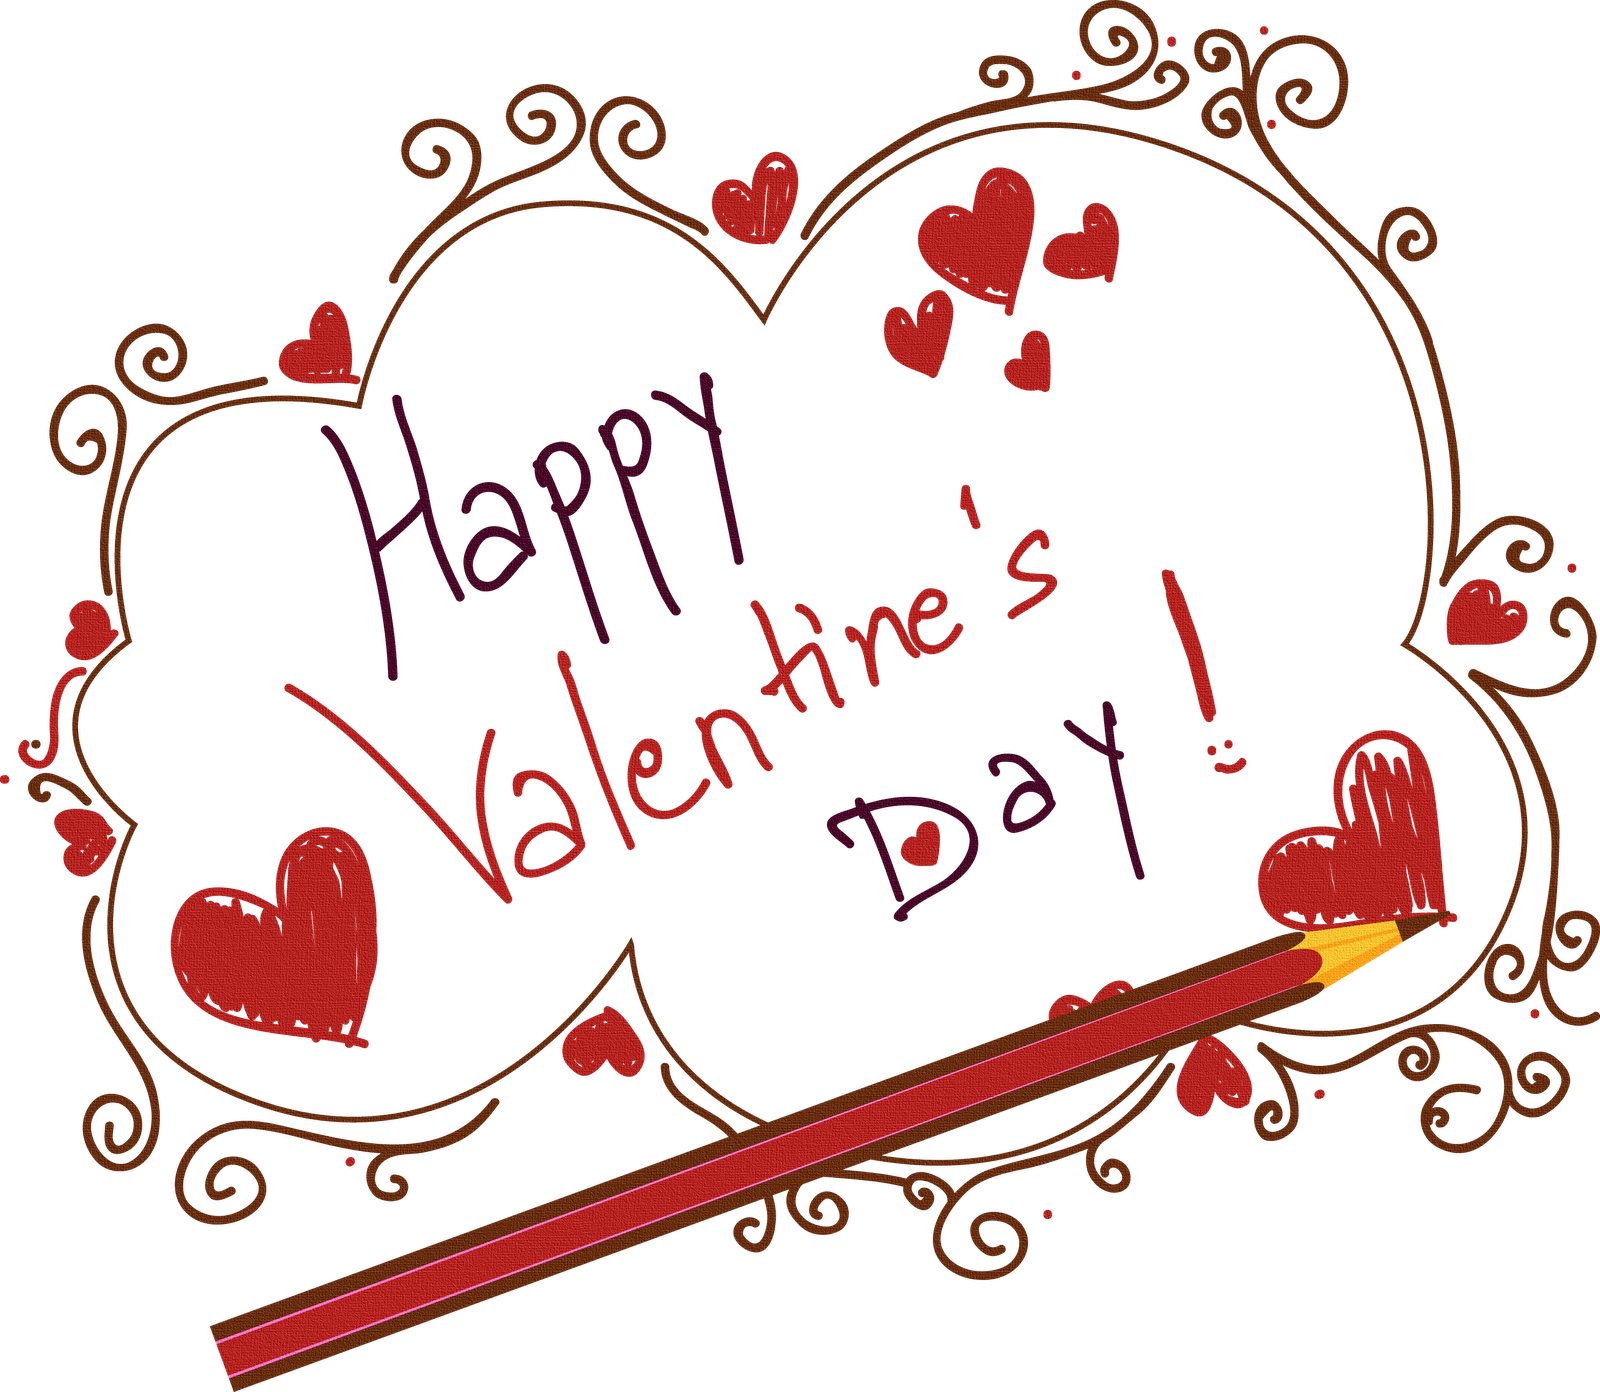 Happy valentines day png. Valentine s transparent images